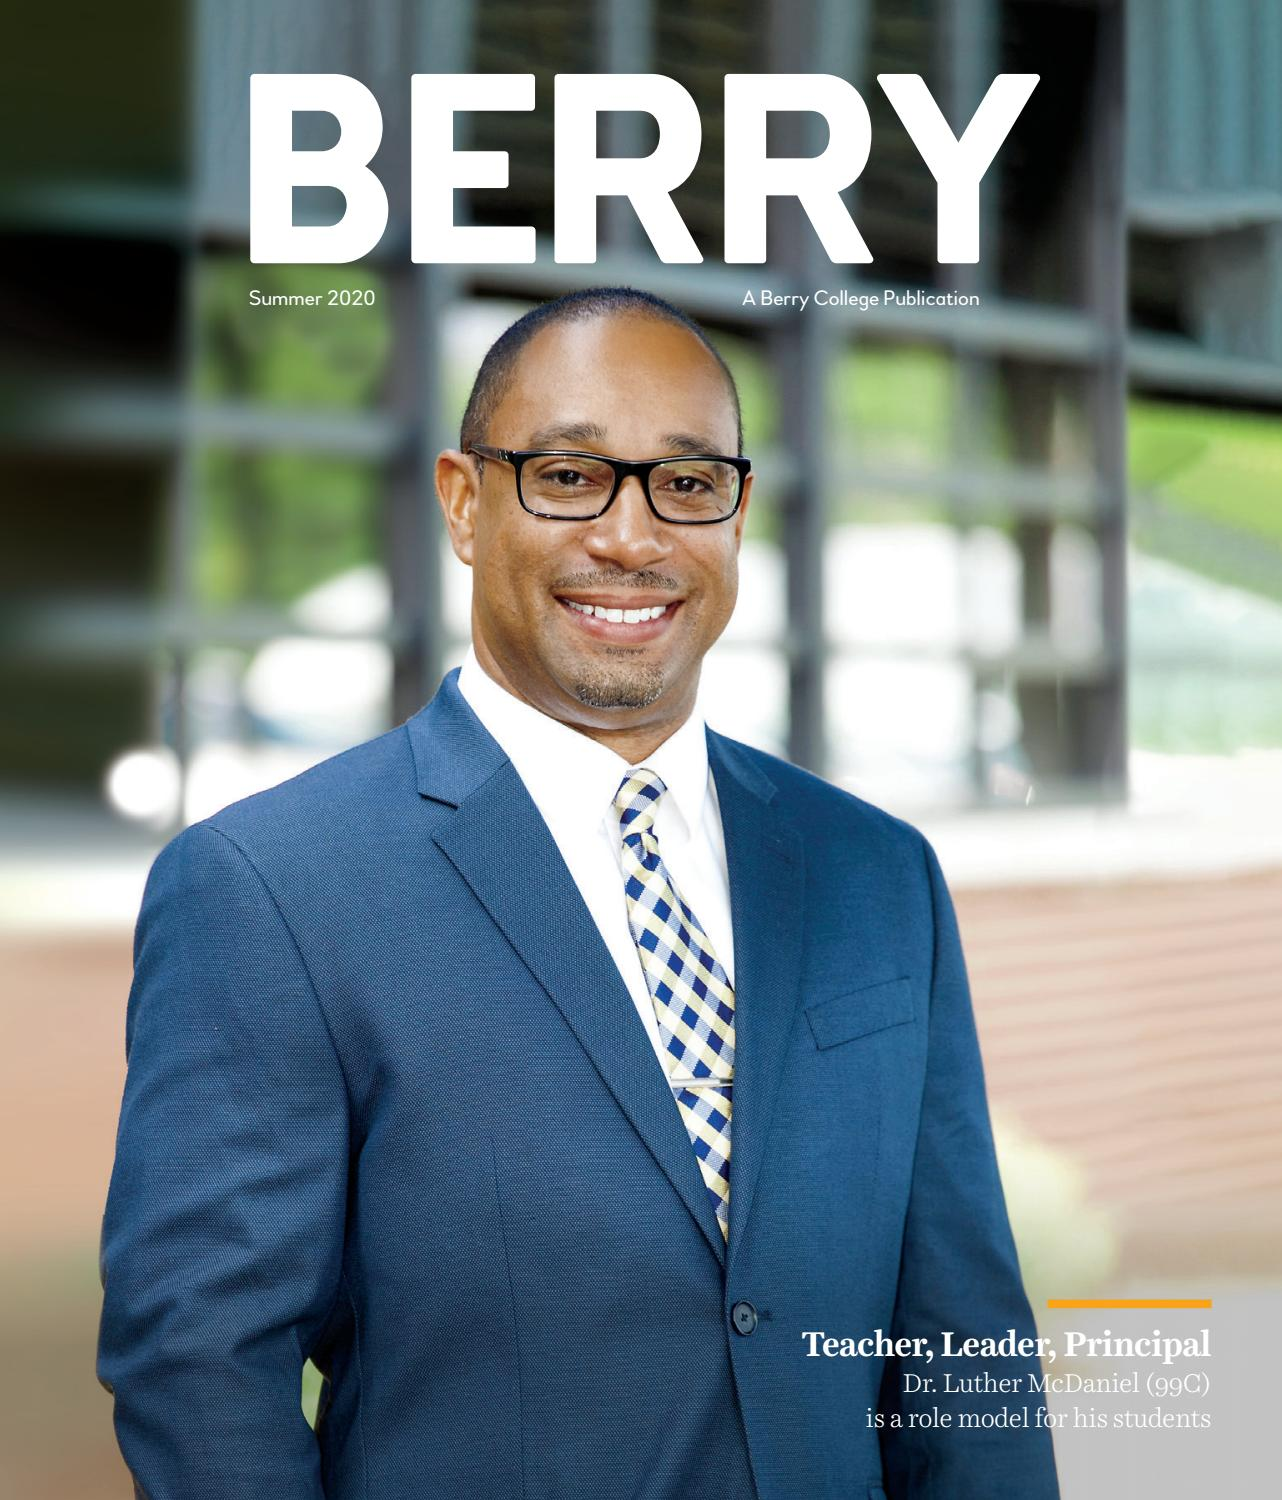 Berry Magazine Summer 2020 By Berry College Issuu